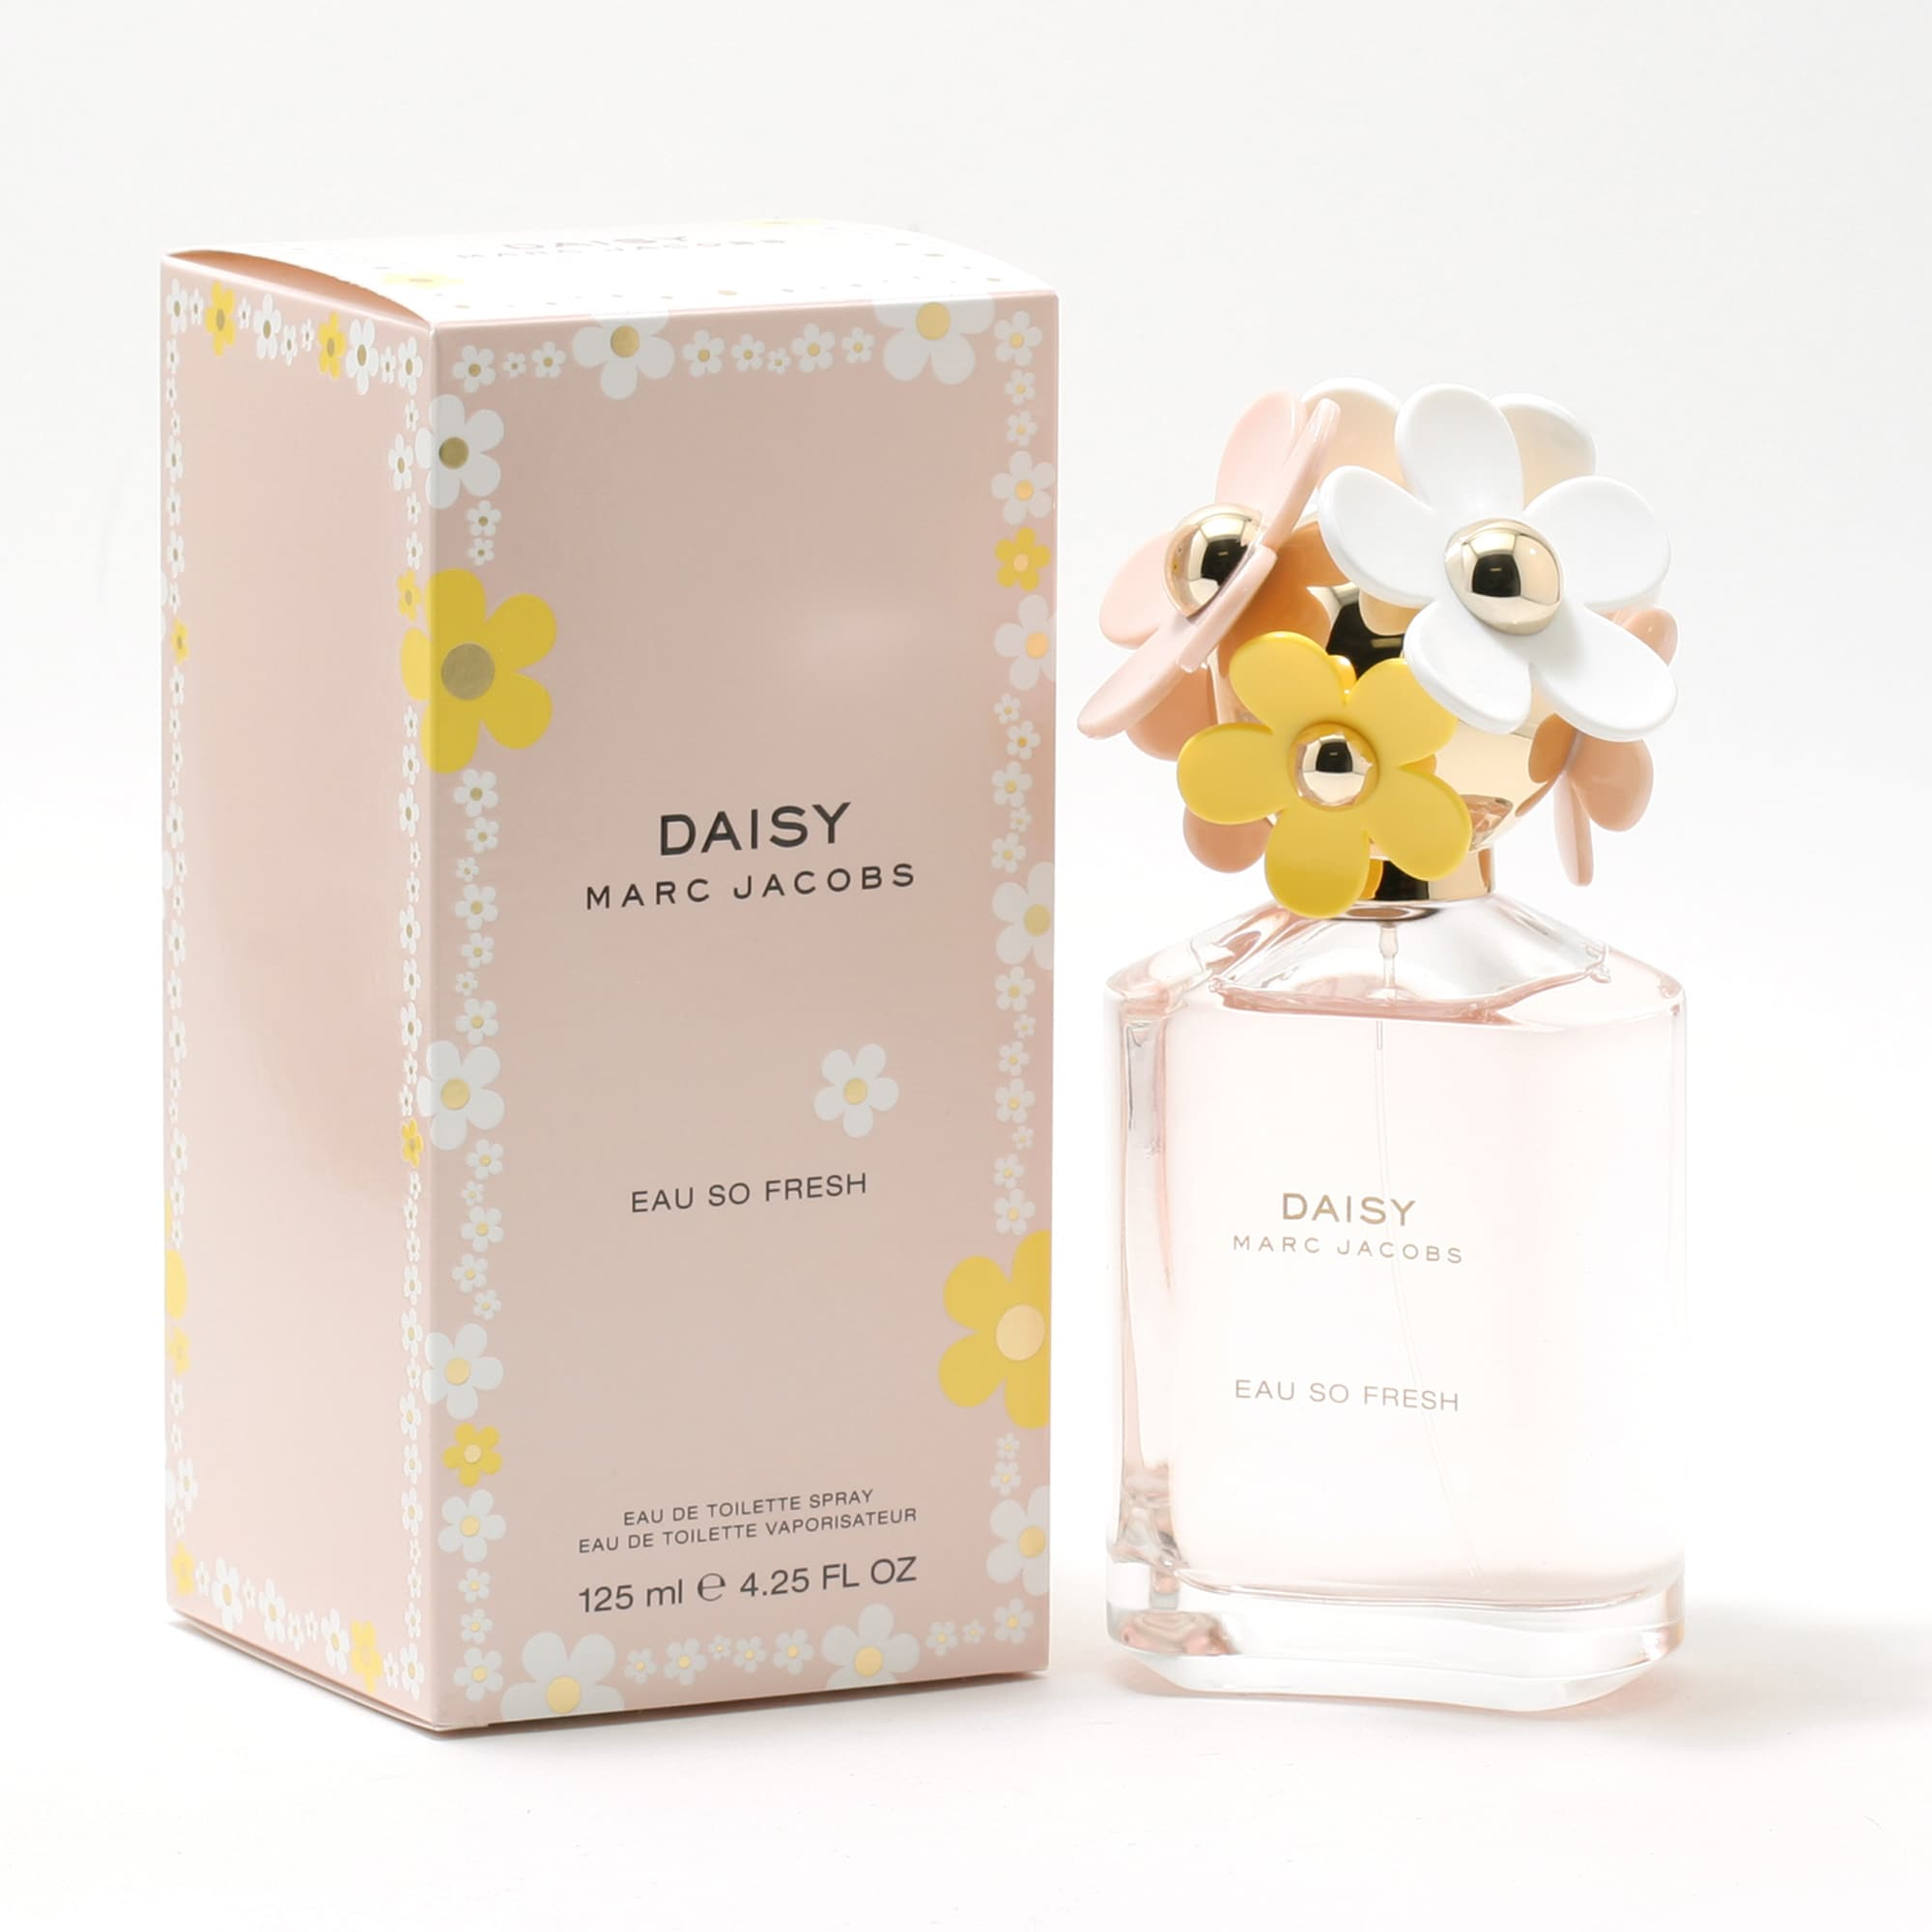 Parfum Laundry Floral 100 Ml Methanol 90percent Daftar Harga Mustika Putri Body Spray Cologne Aroma Flower Bouquet Home 90 Page 2 Marc Jacobs Daisy